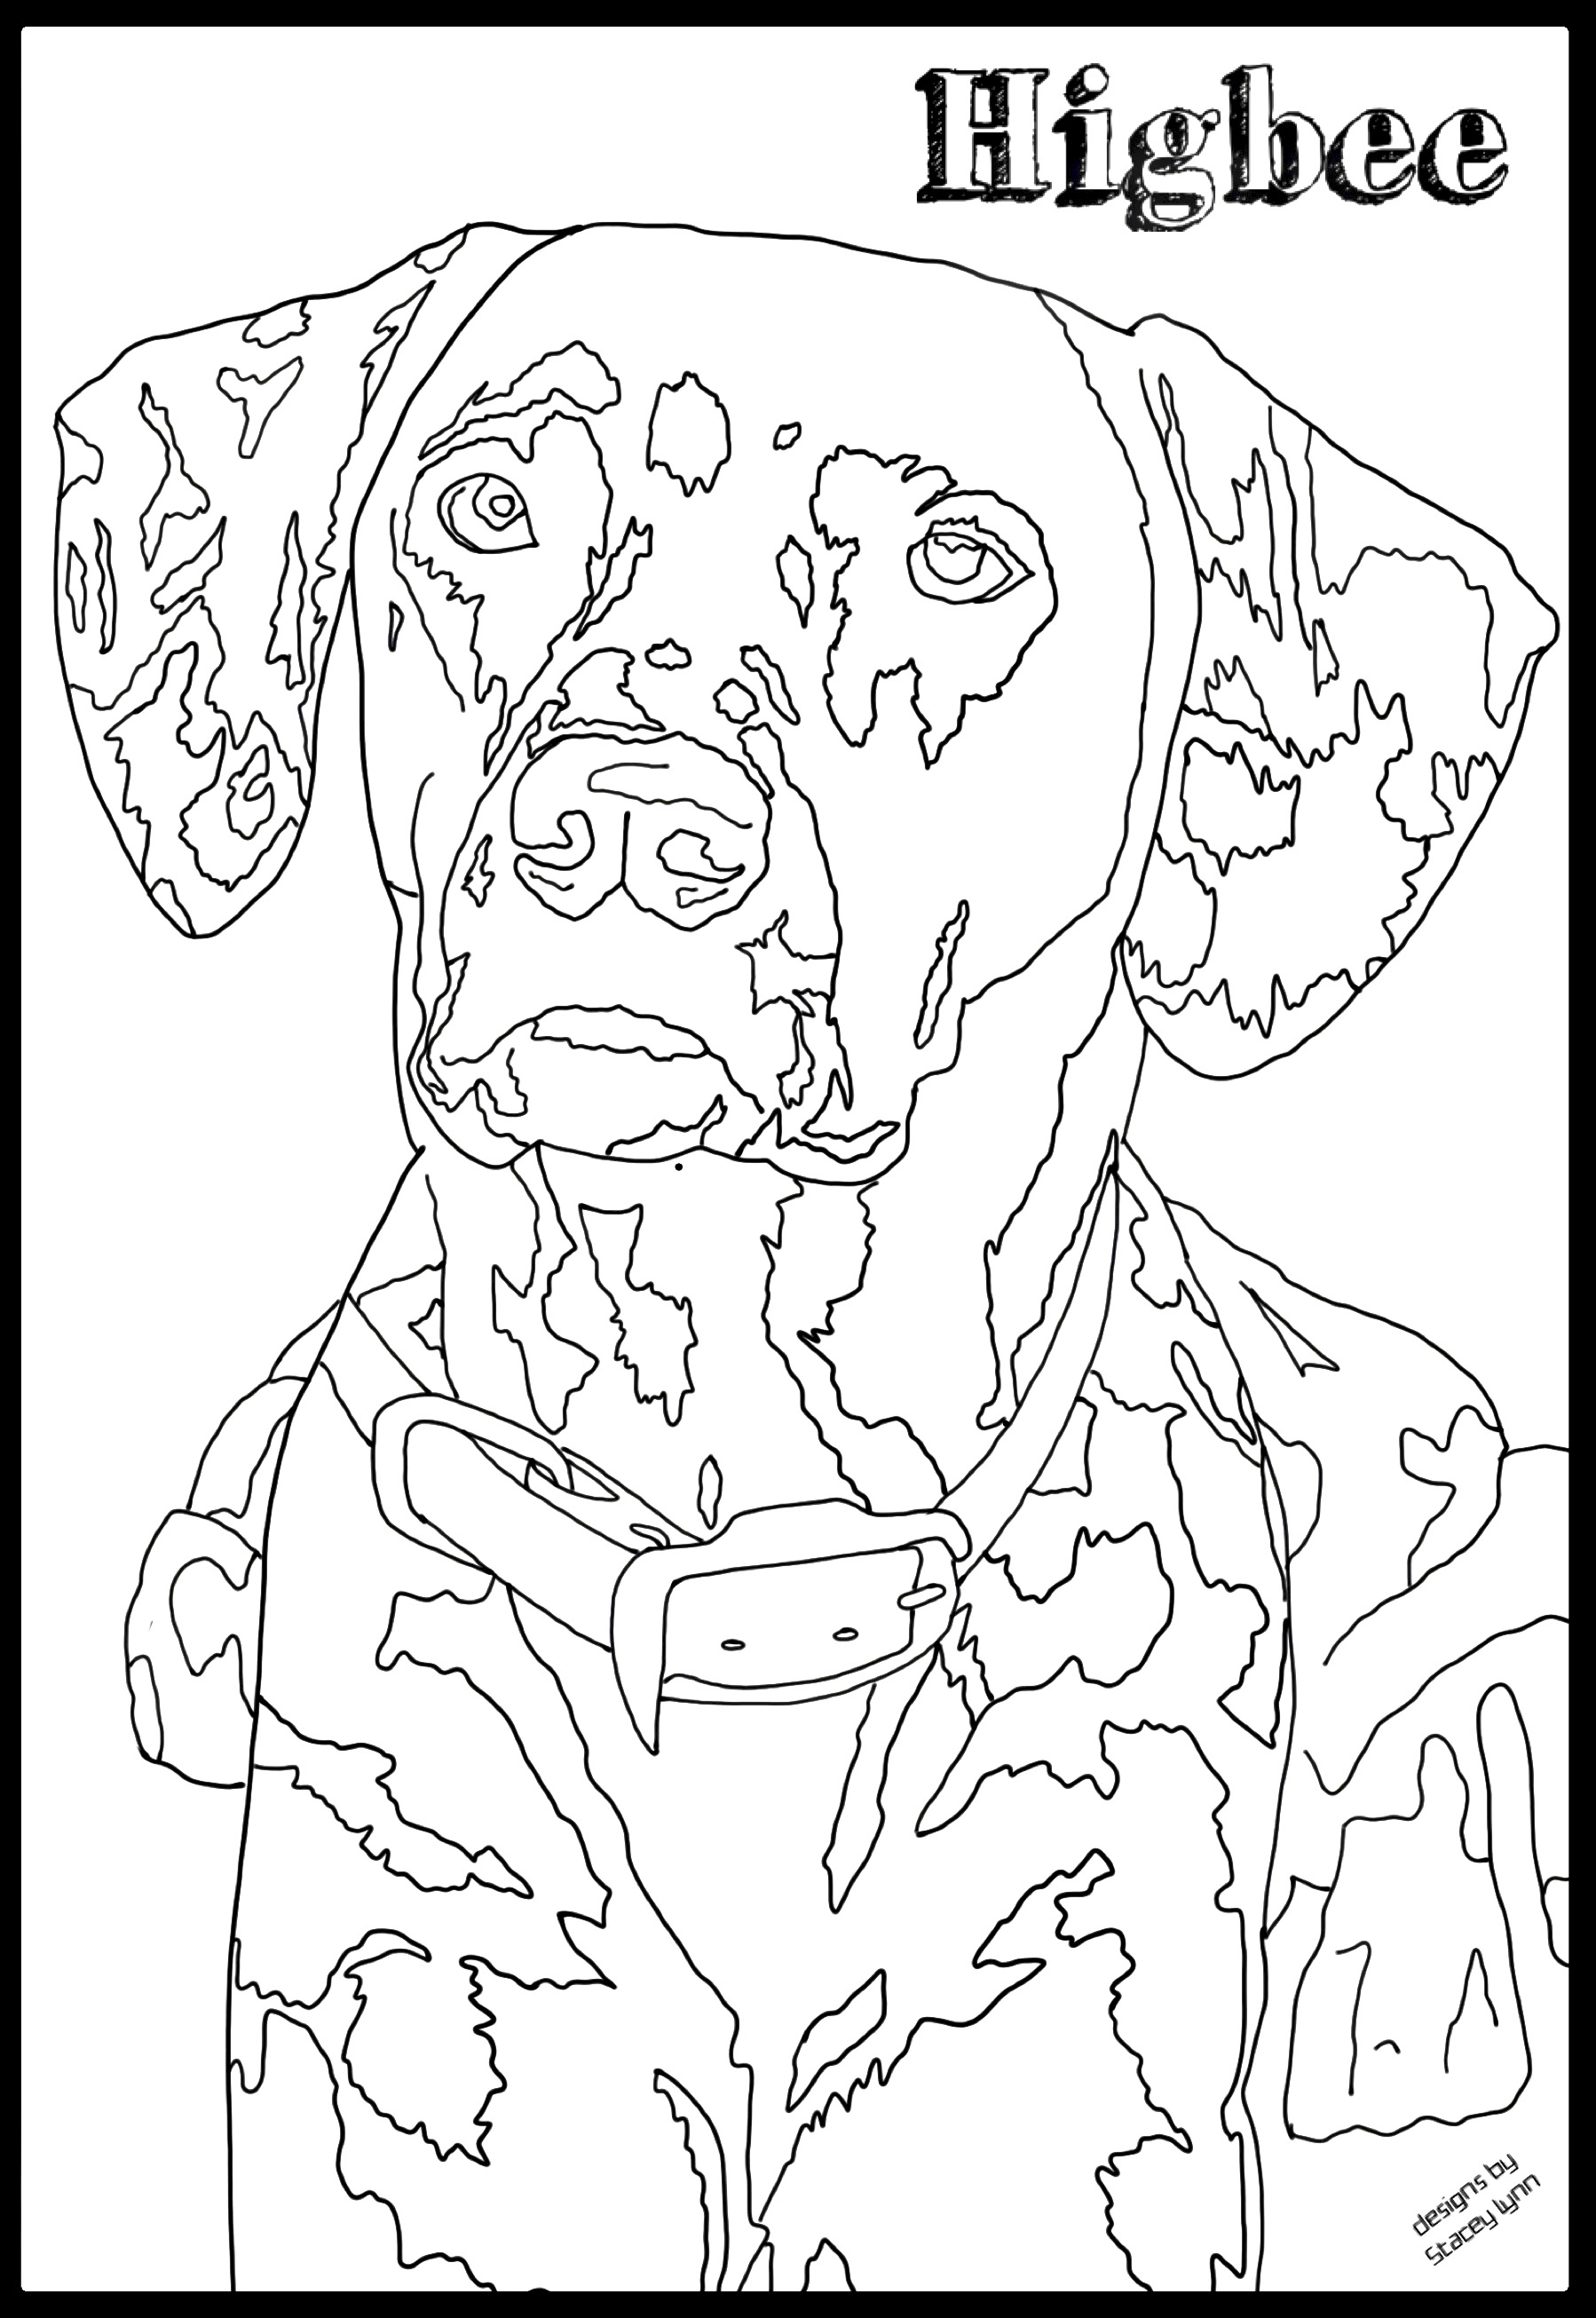 A New Coloring Page Of Mr Charles Higbee One Of Our Past